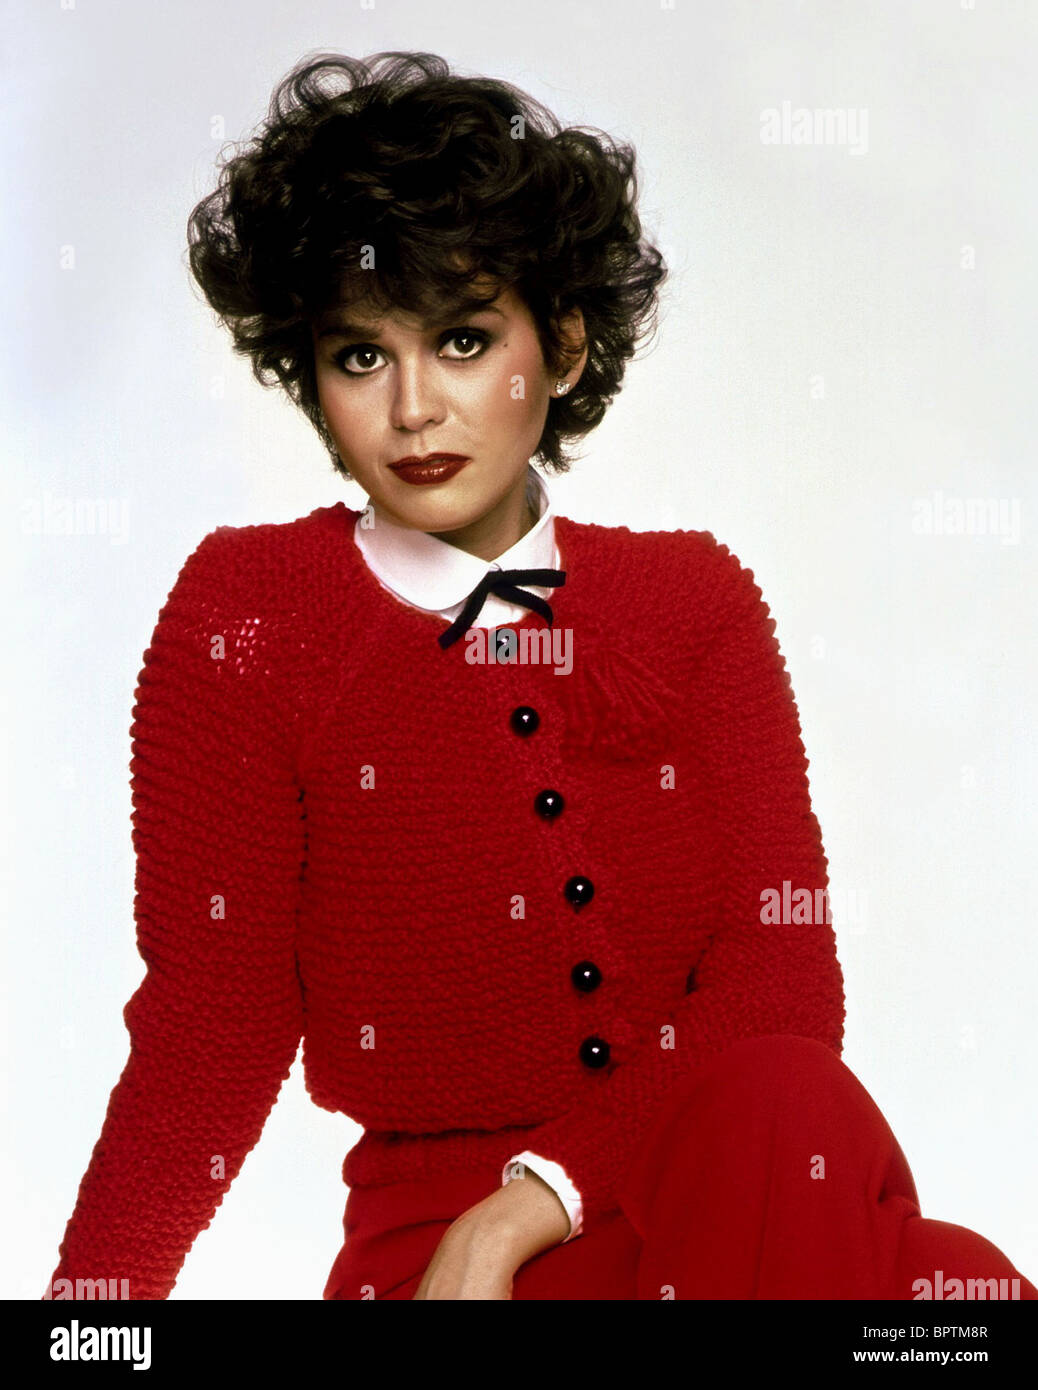 Marie Osmond Stock Photos Amp Marie Osmond Stock Images Alamy